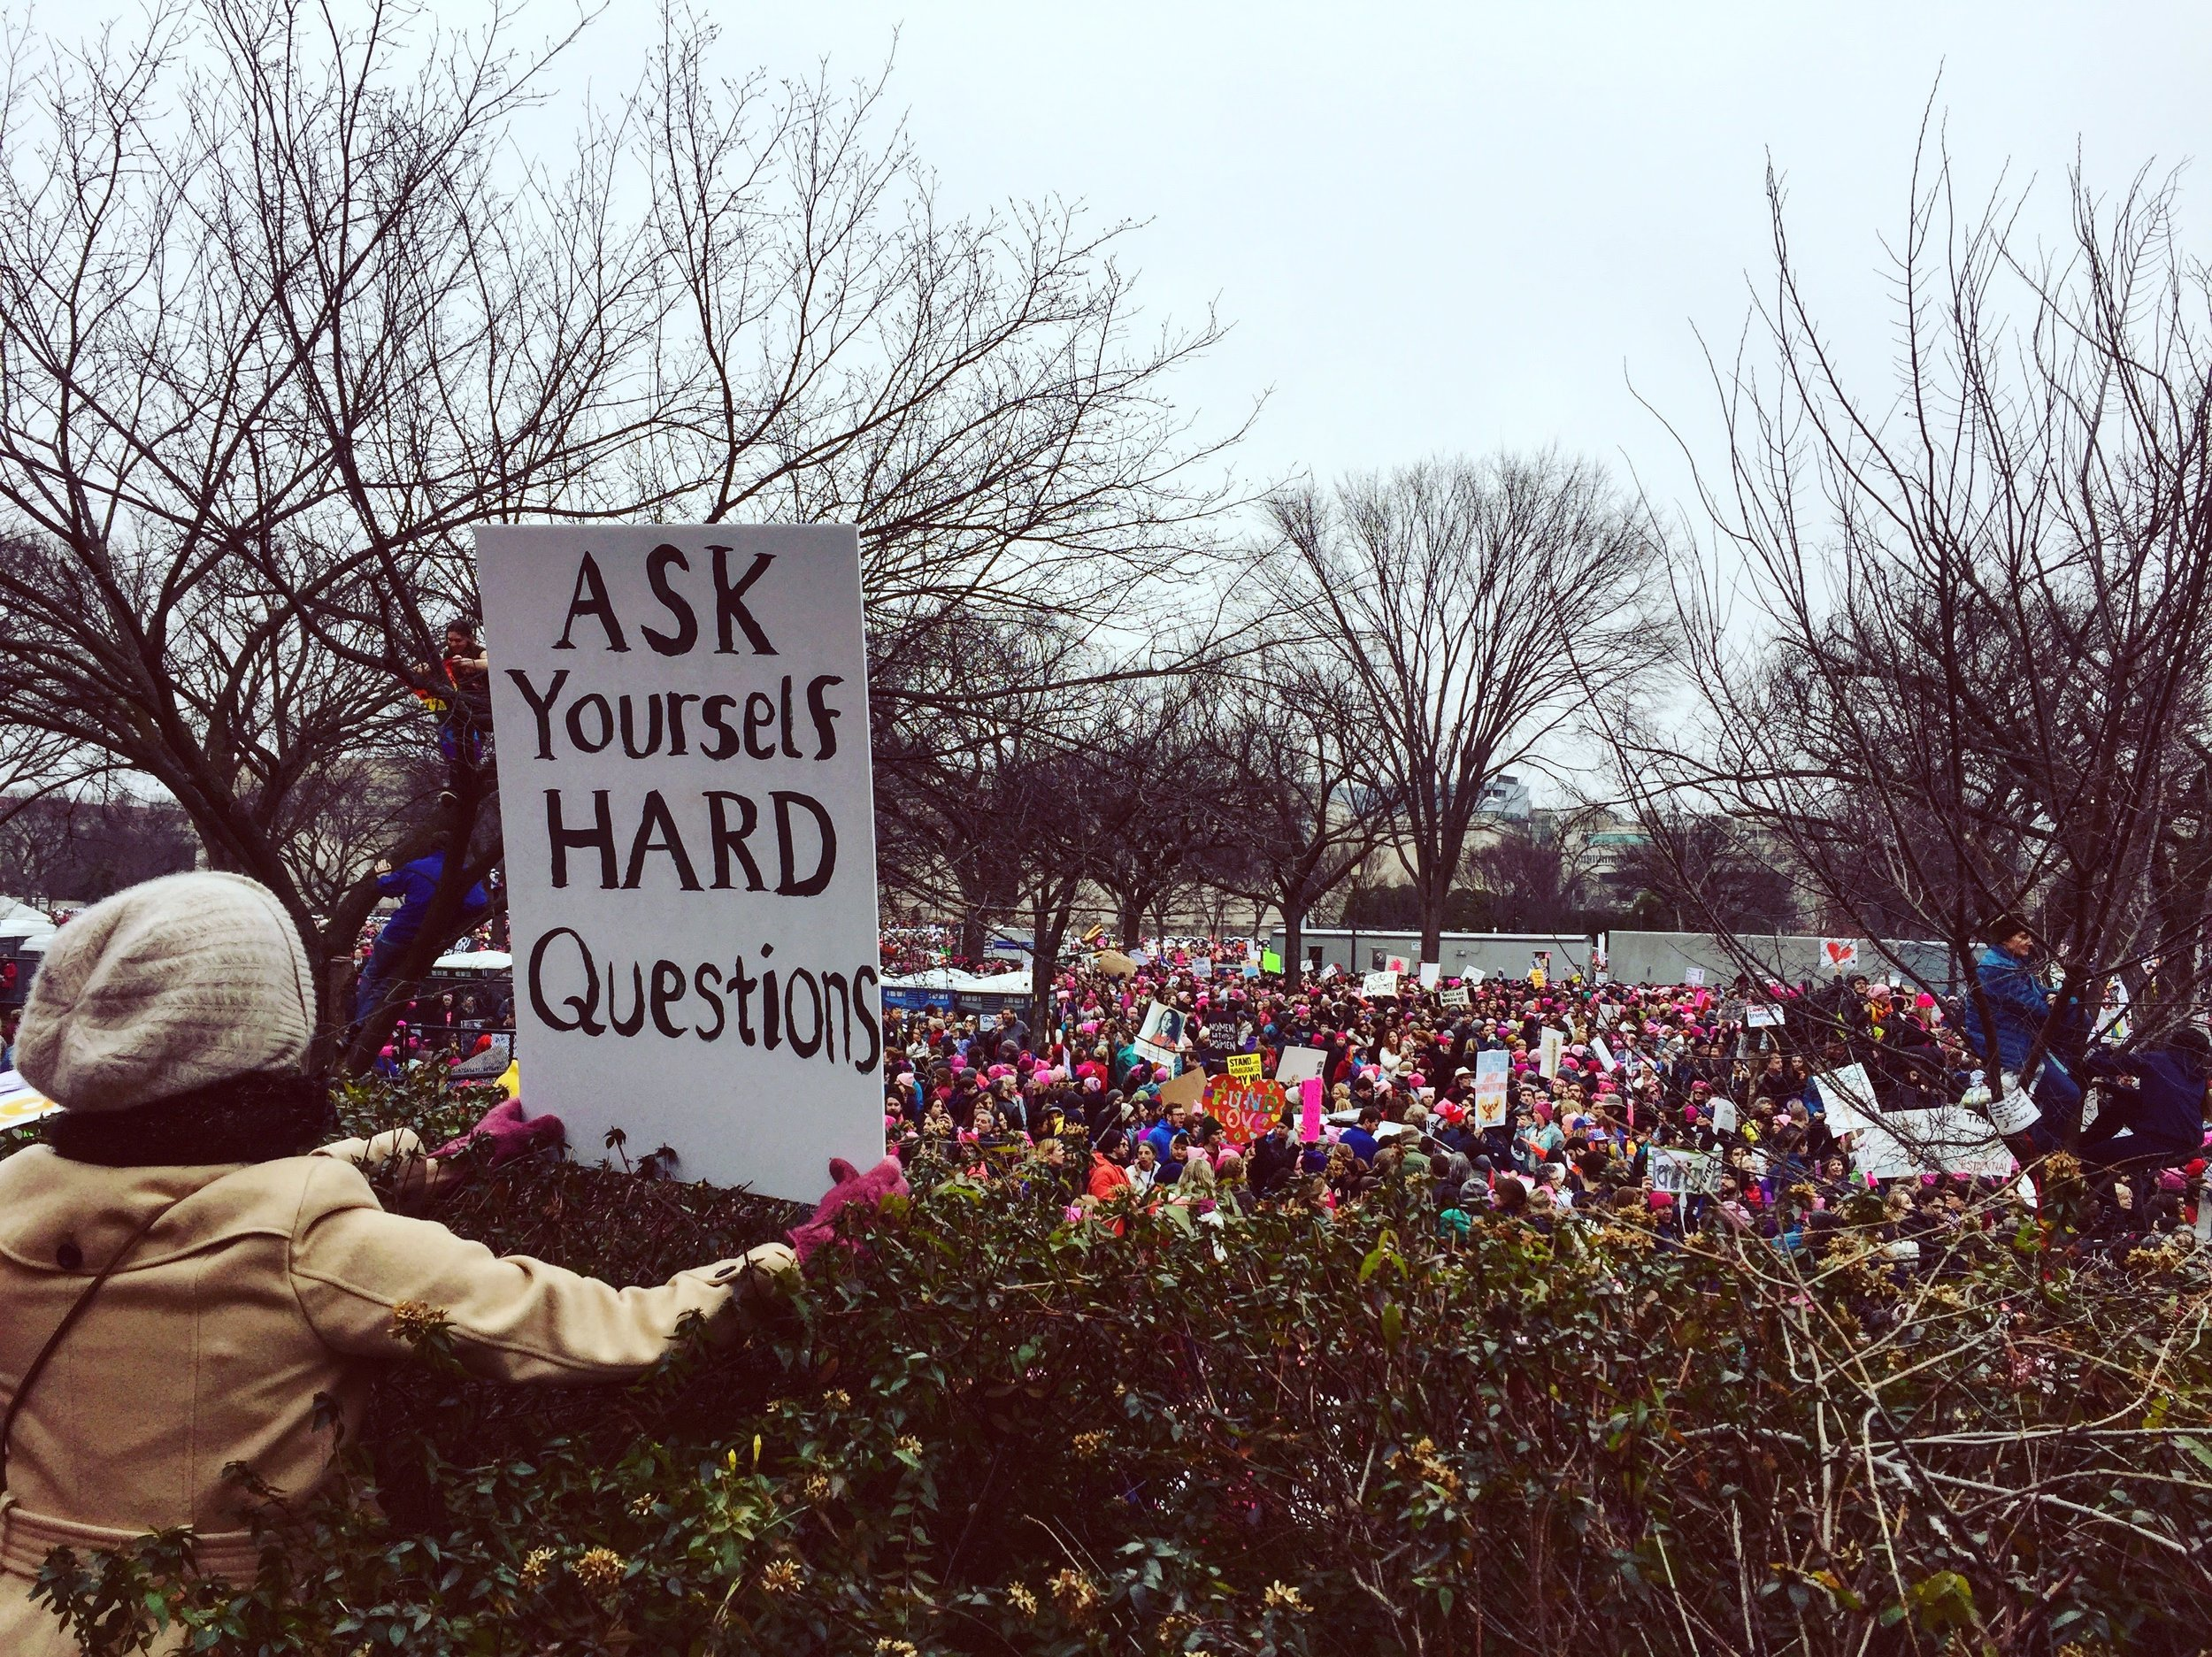 Ask yourself hard questions. (Photo by author, Women's March on Washington, 2017)